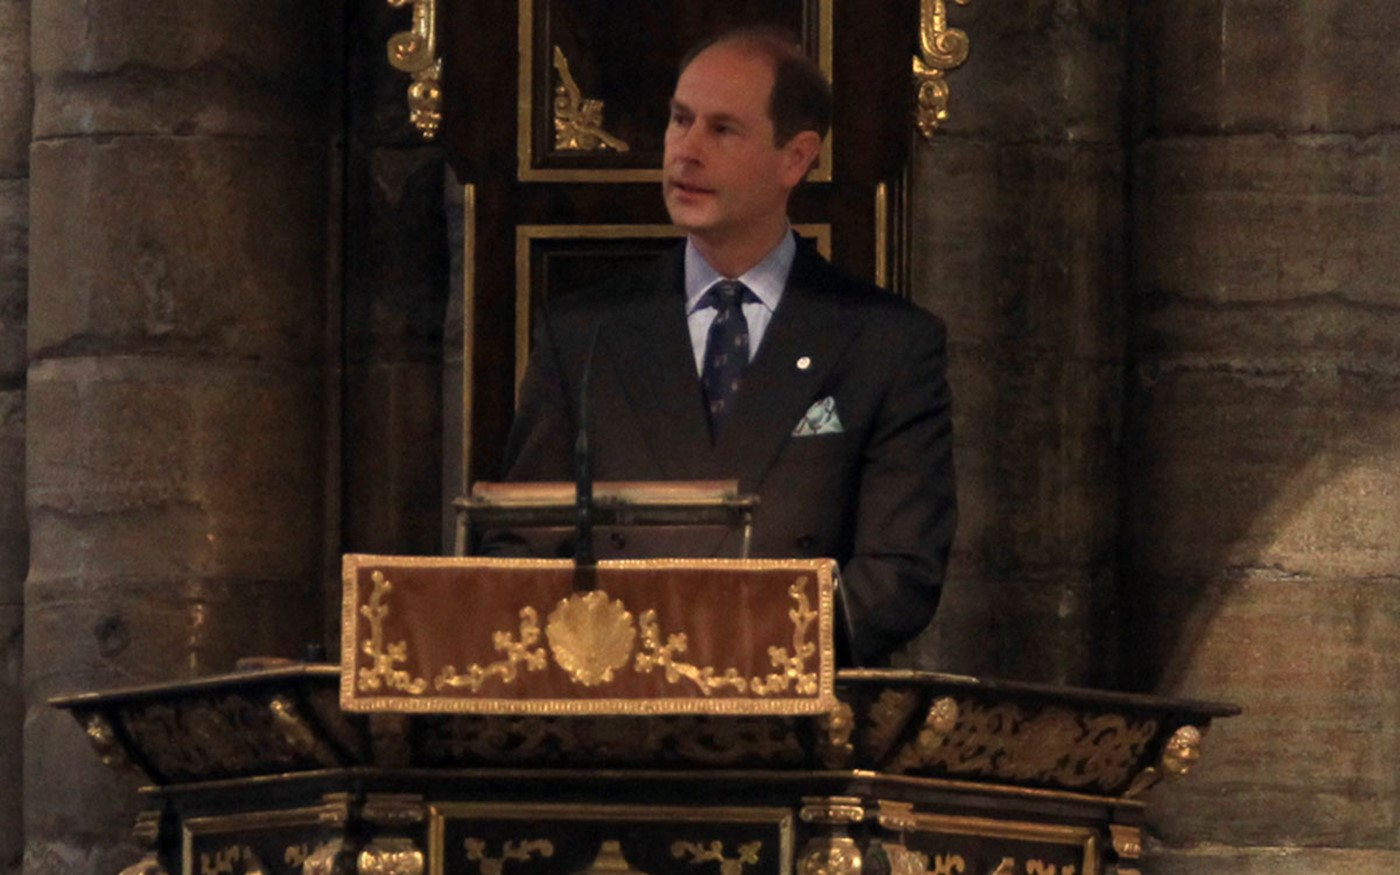 The Earl of Wessex gives The Address